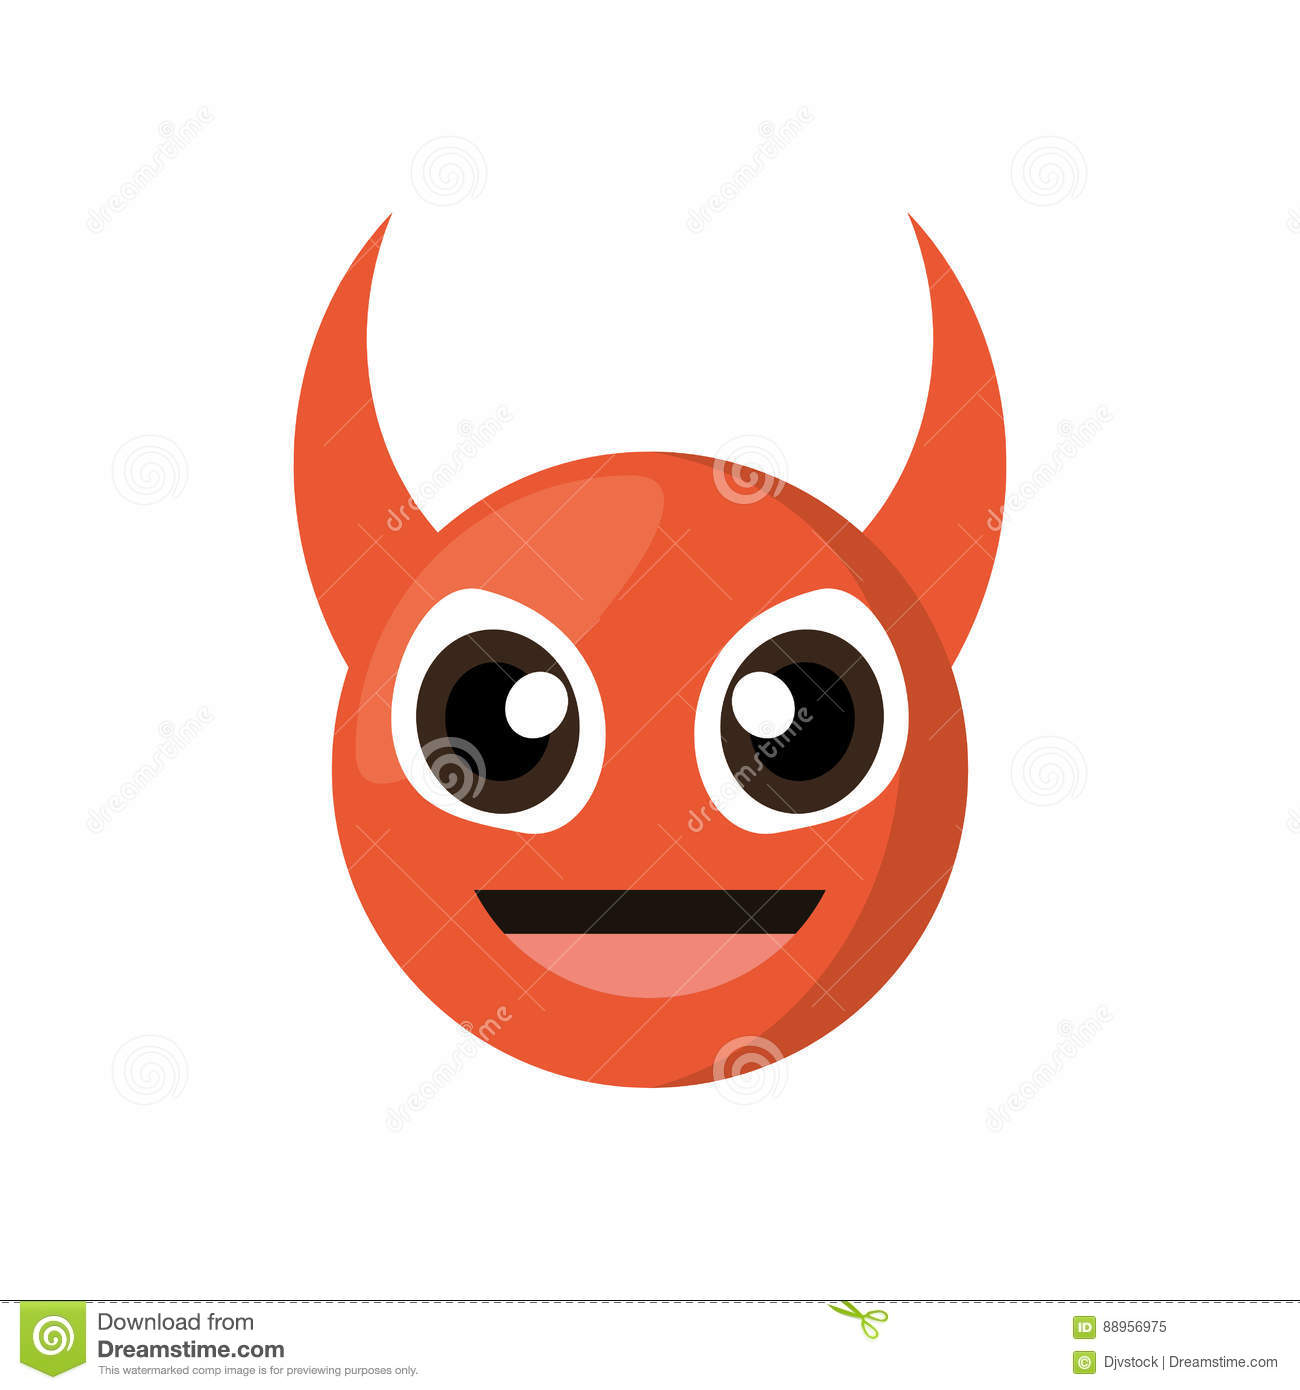 Evil Laugh Emoticon Cartoon Vector | CartoonDealer.com ...